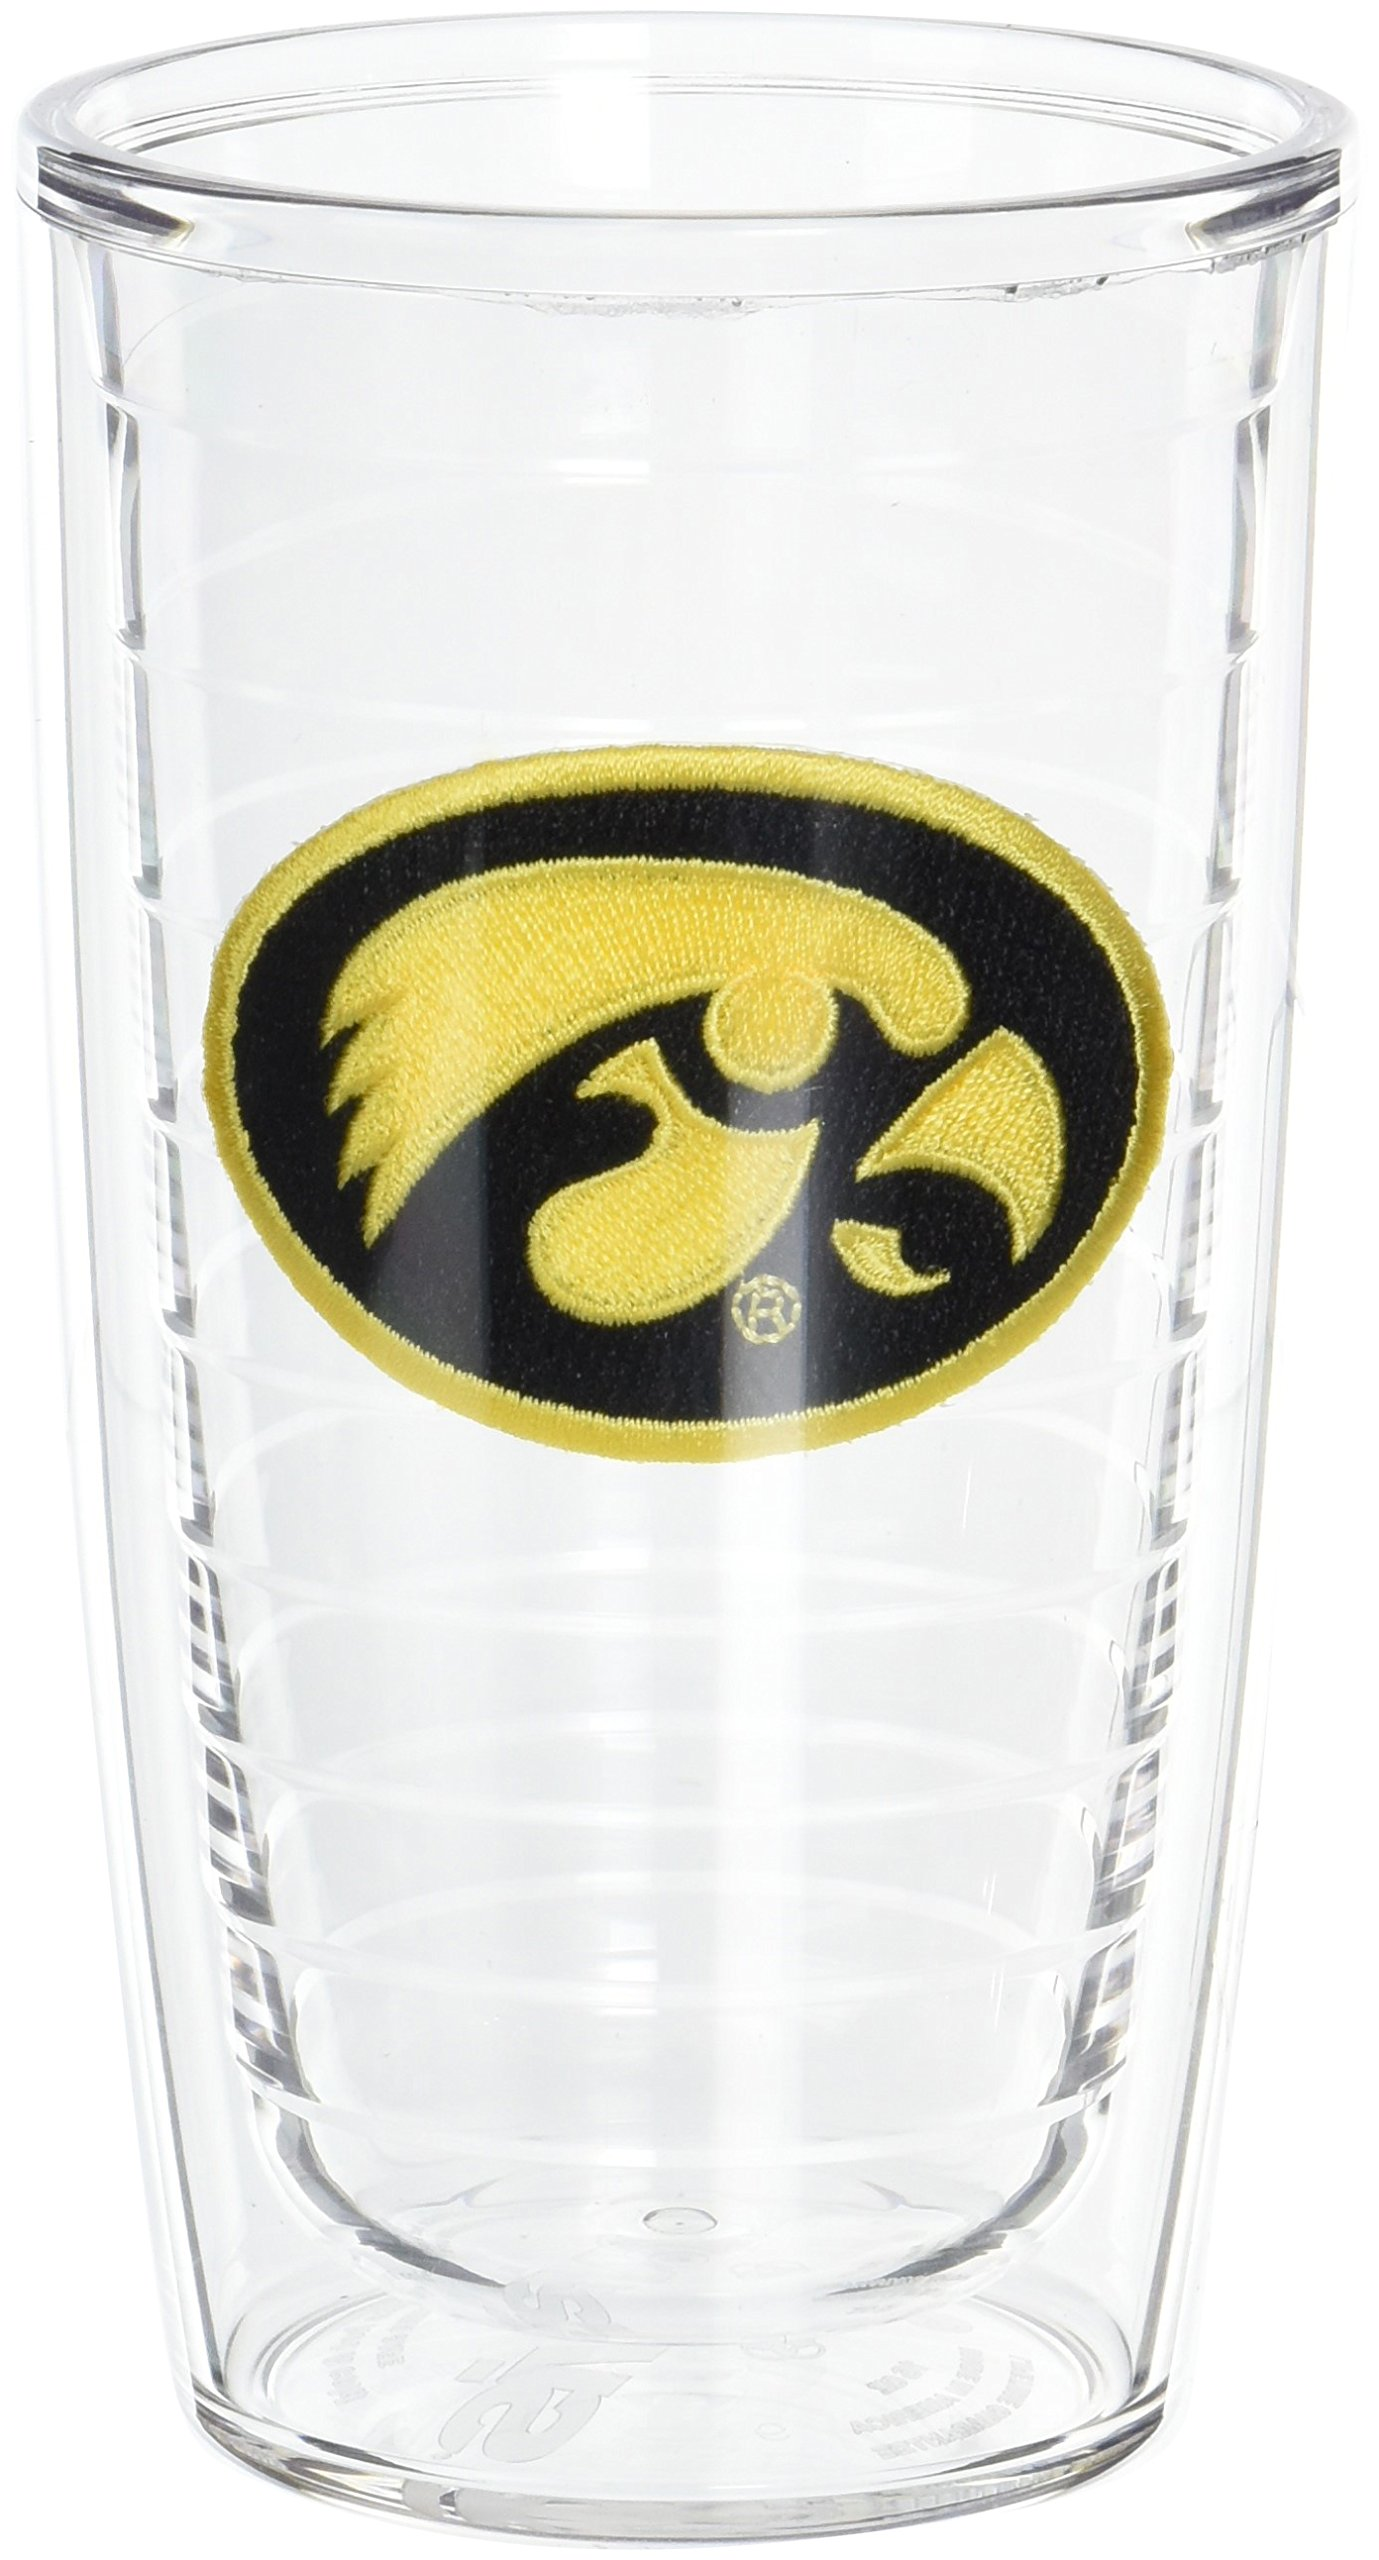 Tervis 1005861 Iowa University Emblem Tumbler, Set of 2, 16 oz, Clear